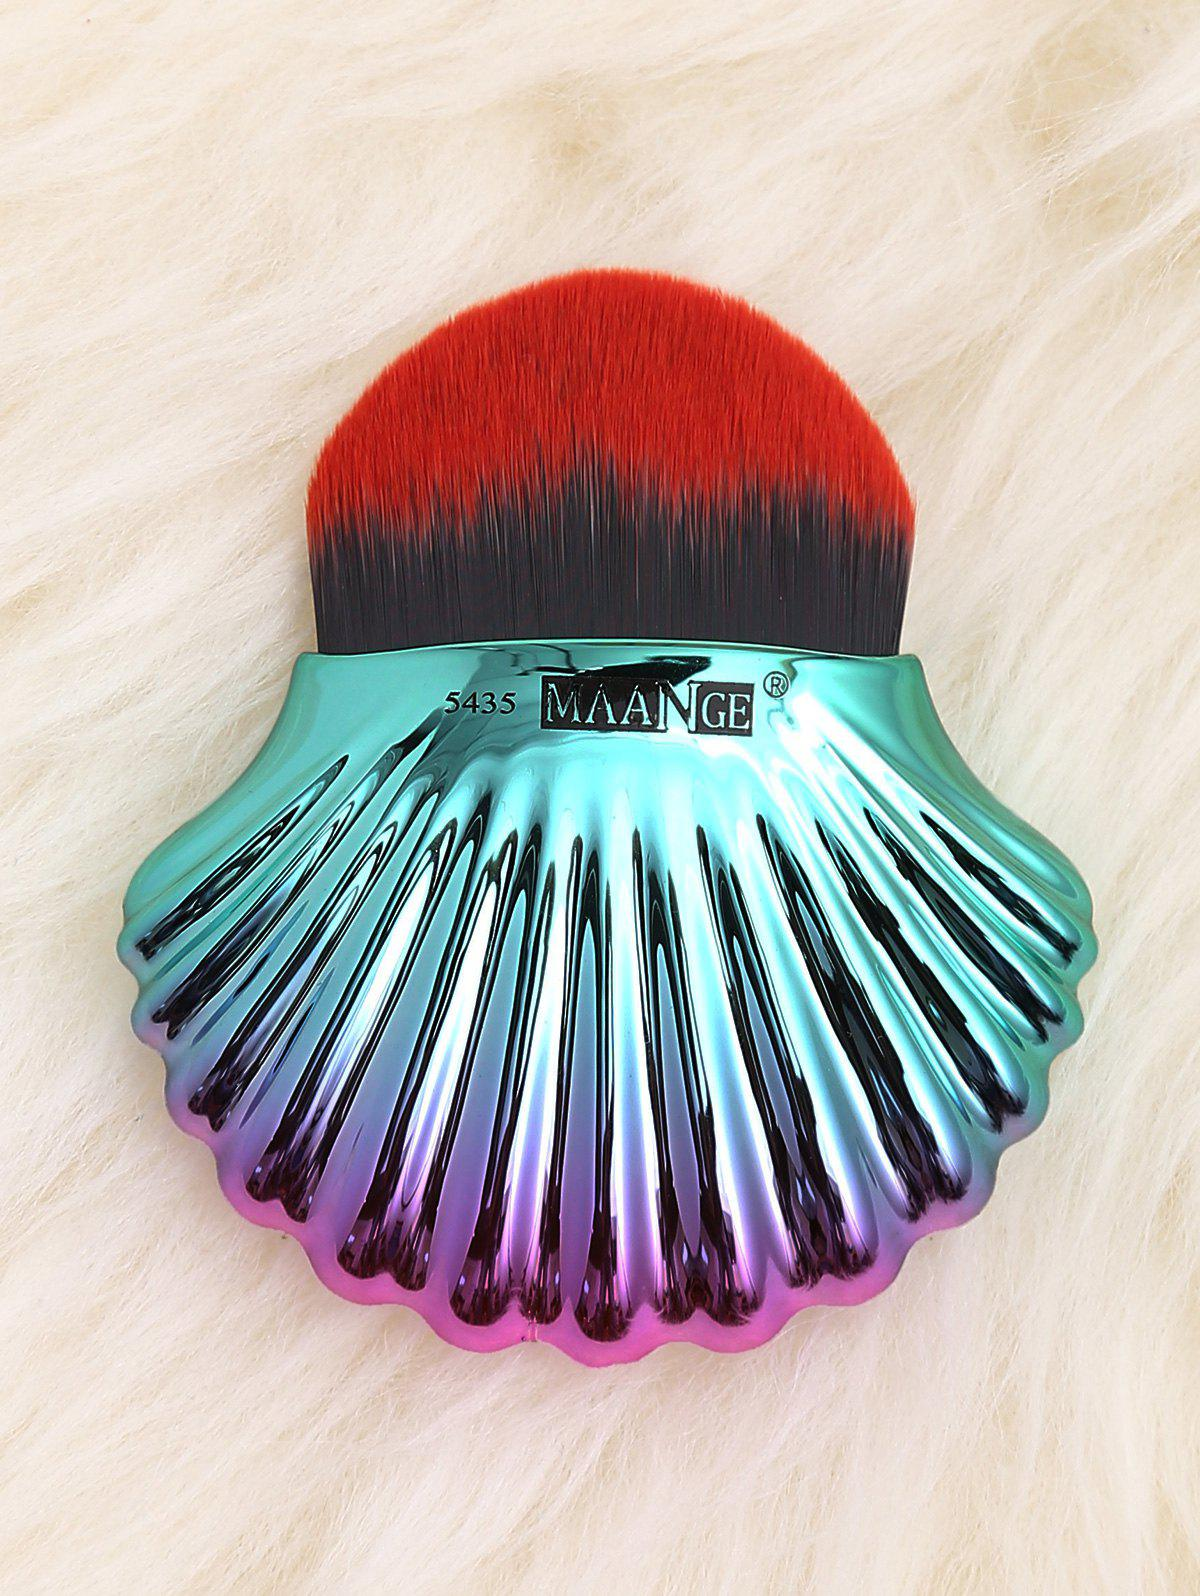 Unique Two Tone Ocean Shell Shape Foundation Brush